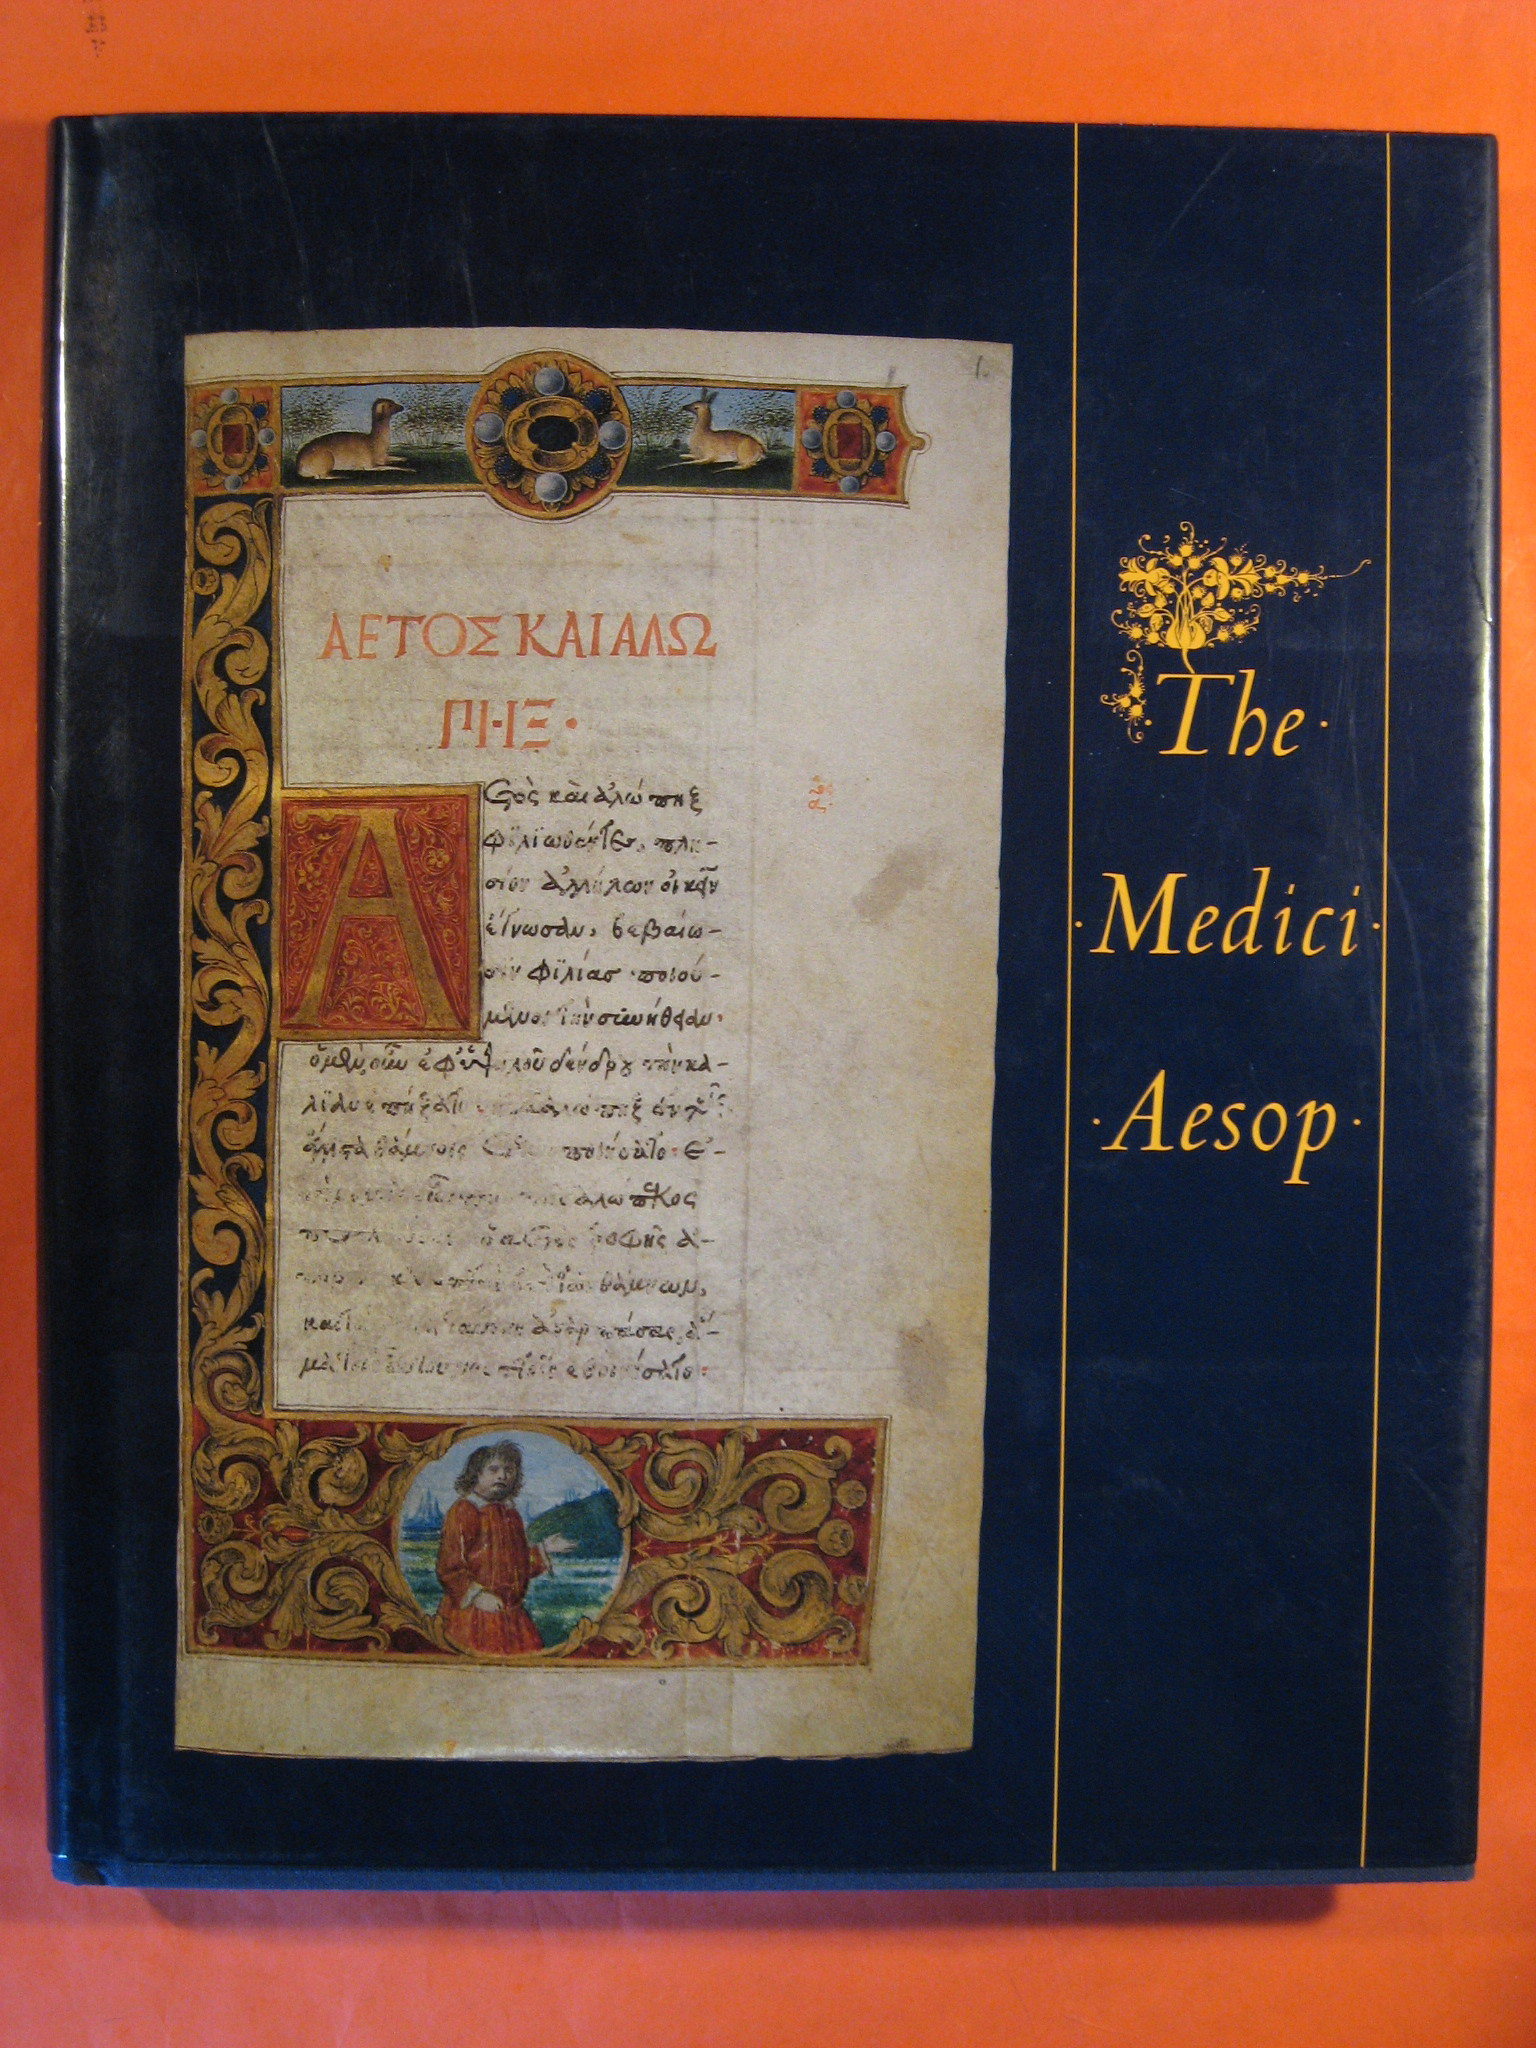 The Medici Aesop: From the Spencer Collection of the New York Public Library, Aesop; McTigue, Bernard; Everett Fahy